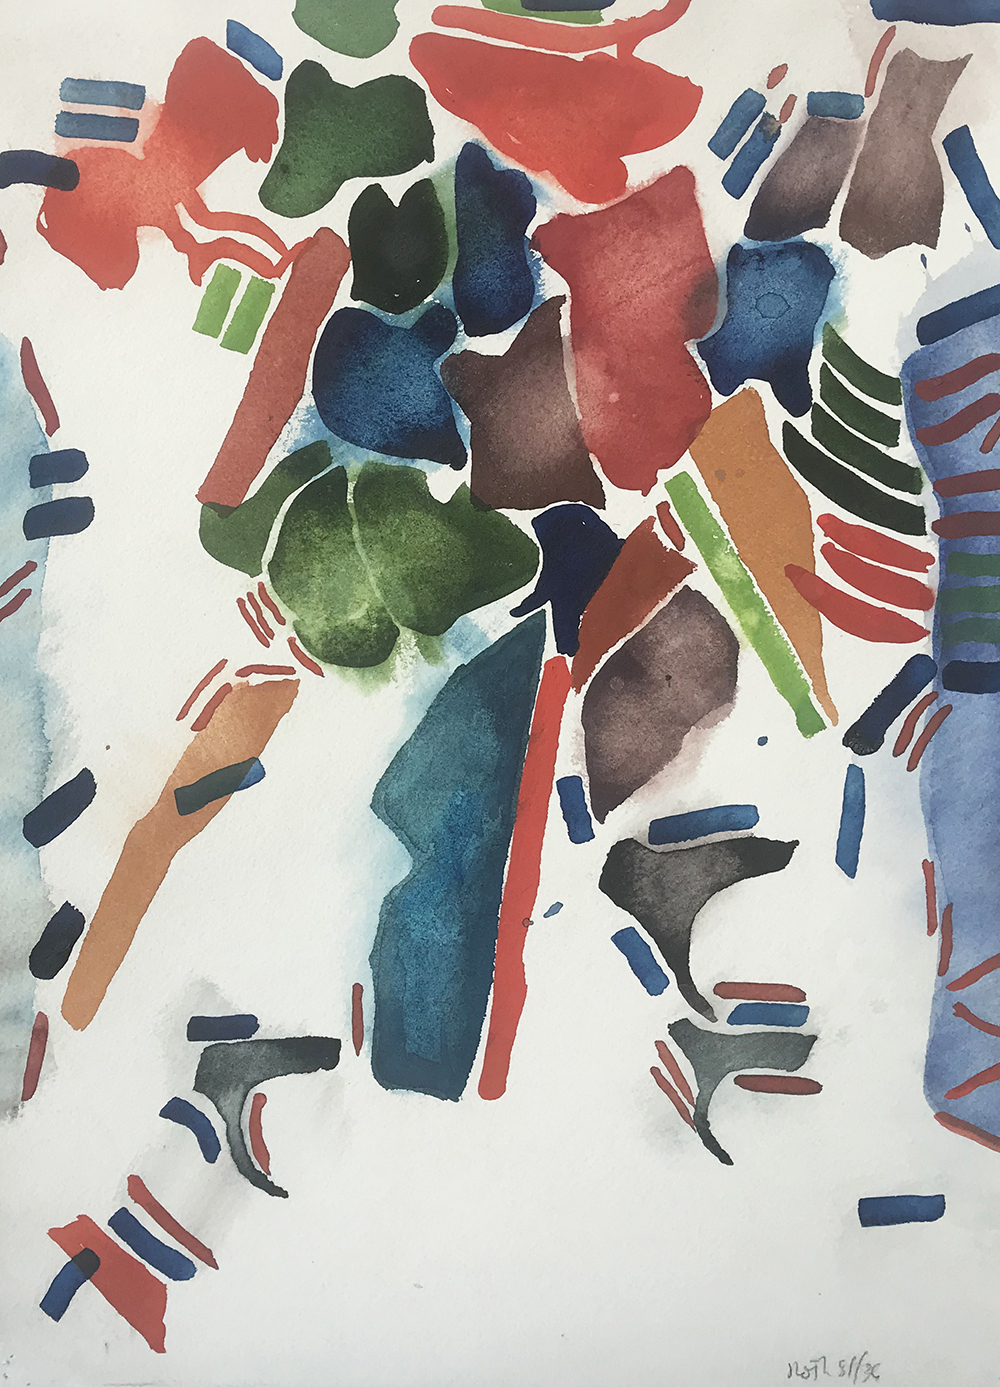 #2652 Untitled,   Watercolor on paper, 1981, 15 1/2 x 11 1/2 inches